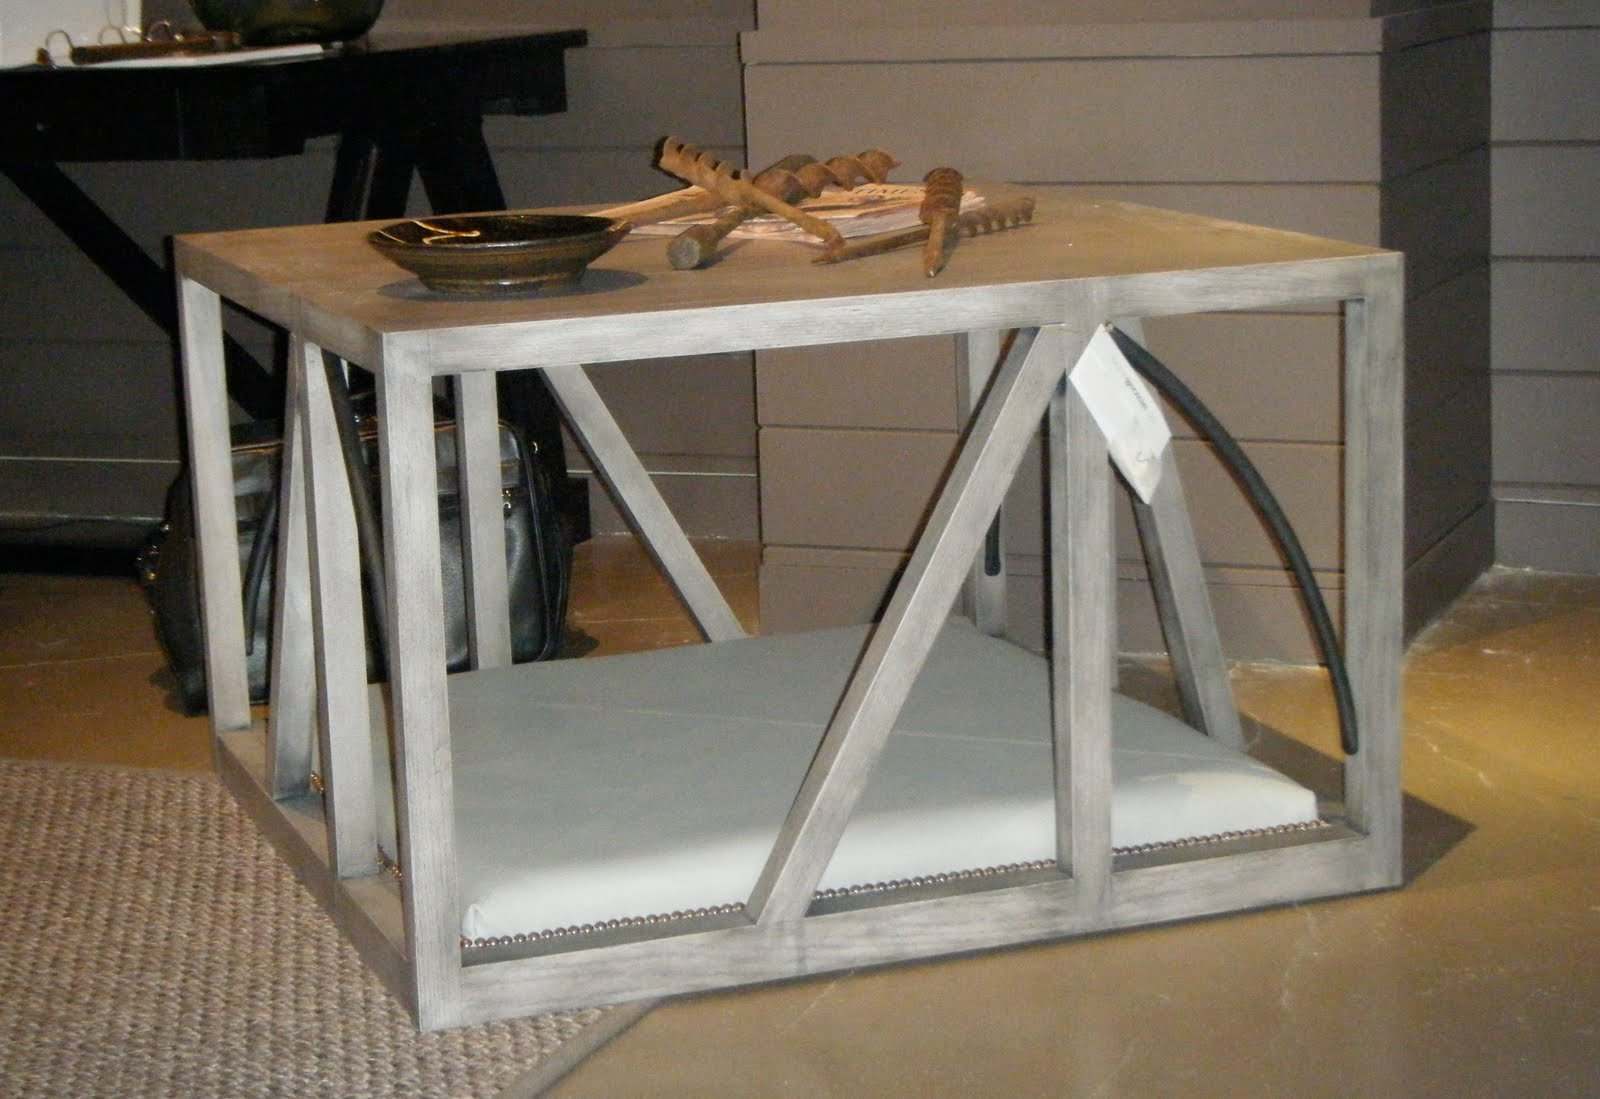 Dovecote decor coffee tables the math lesson table features a built in dog bed it is a gorgeous mix of natural wood dark metal and leather wouldnt it look just charming with your geotapseo Image collections